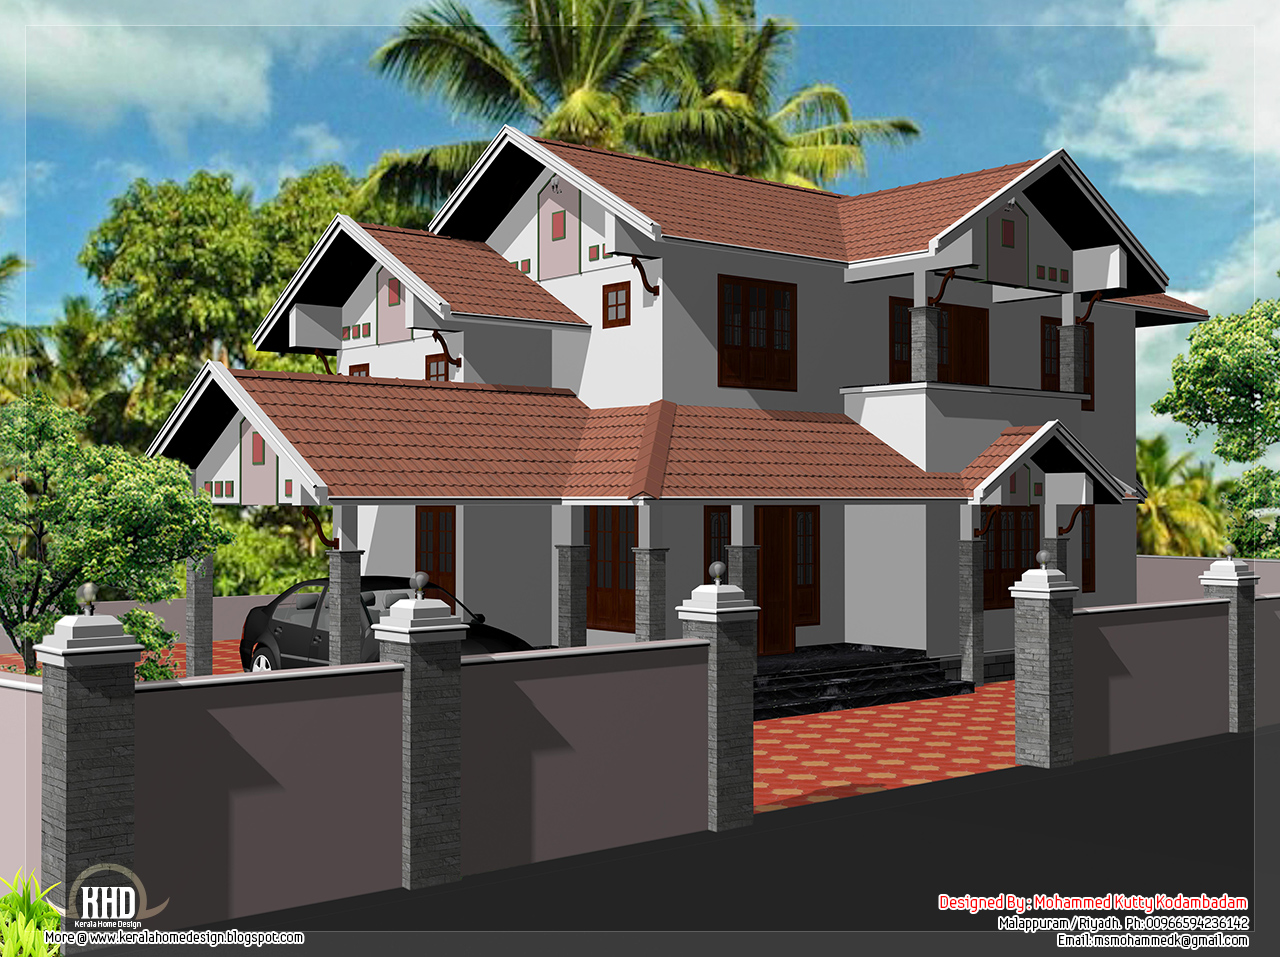 2000 Sqfeet House Elevation Design on 3 Bedroom 1200 Sq Ft House Plans